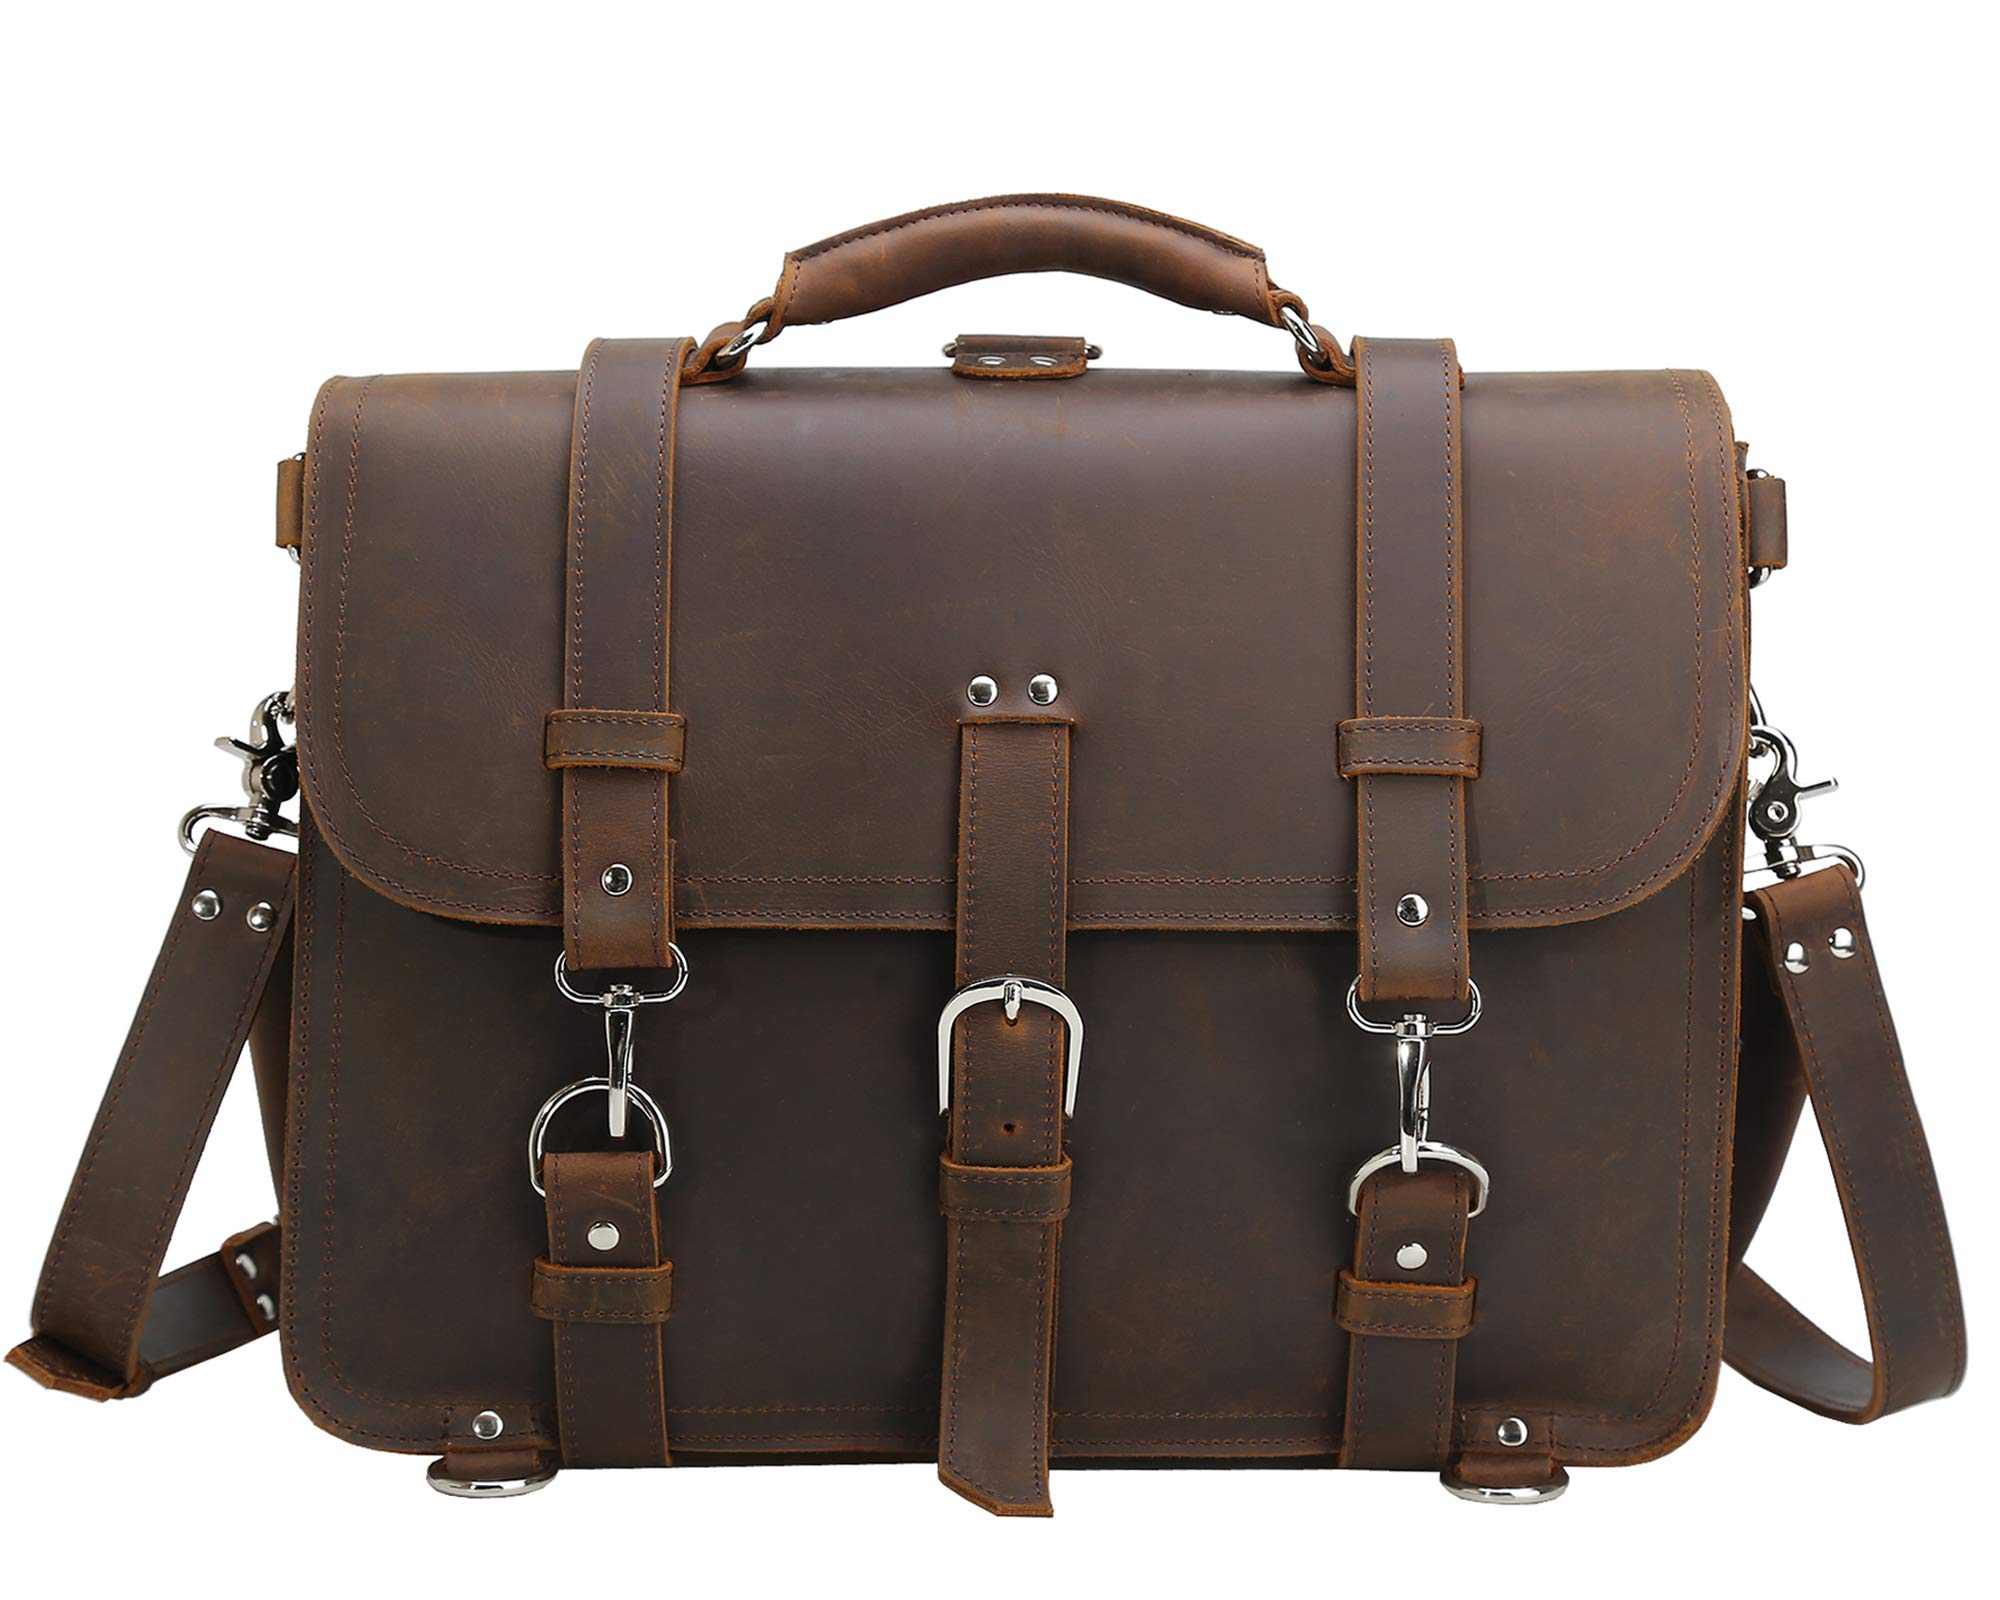 Texbo Men's 16 Inch Thick Cowhide Leather Briefcase Laptop Shoulder Messenger Bag Tote by Texbo (Image #3)